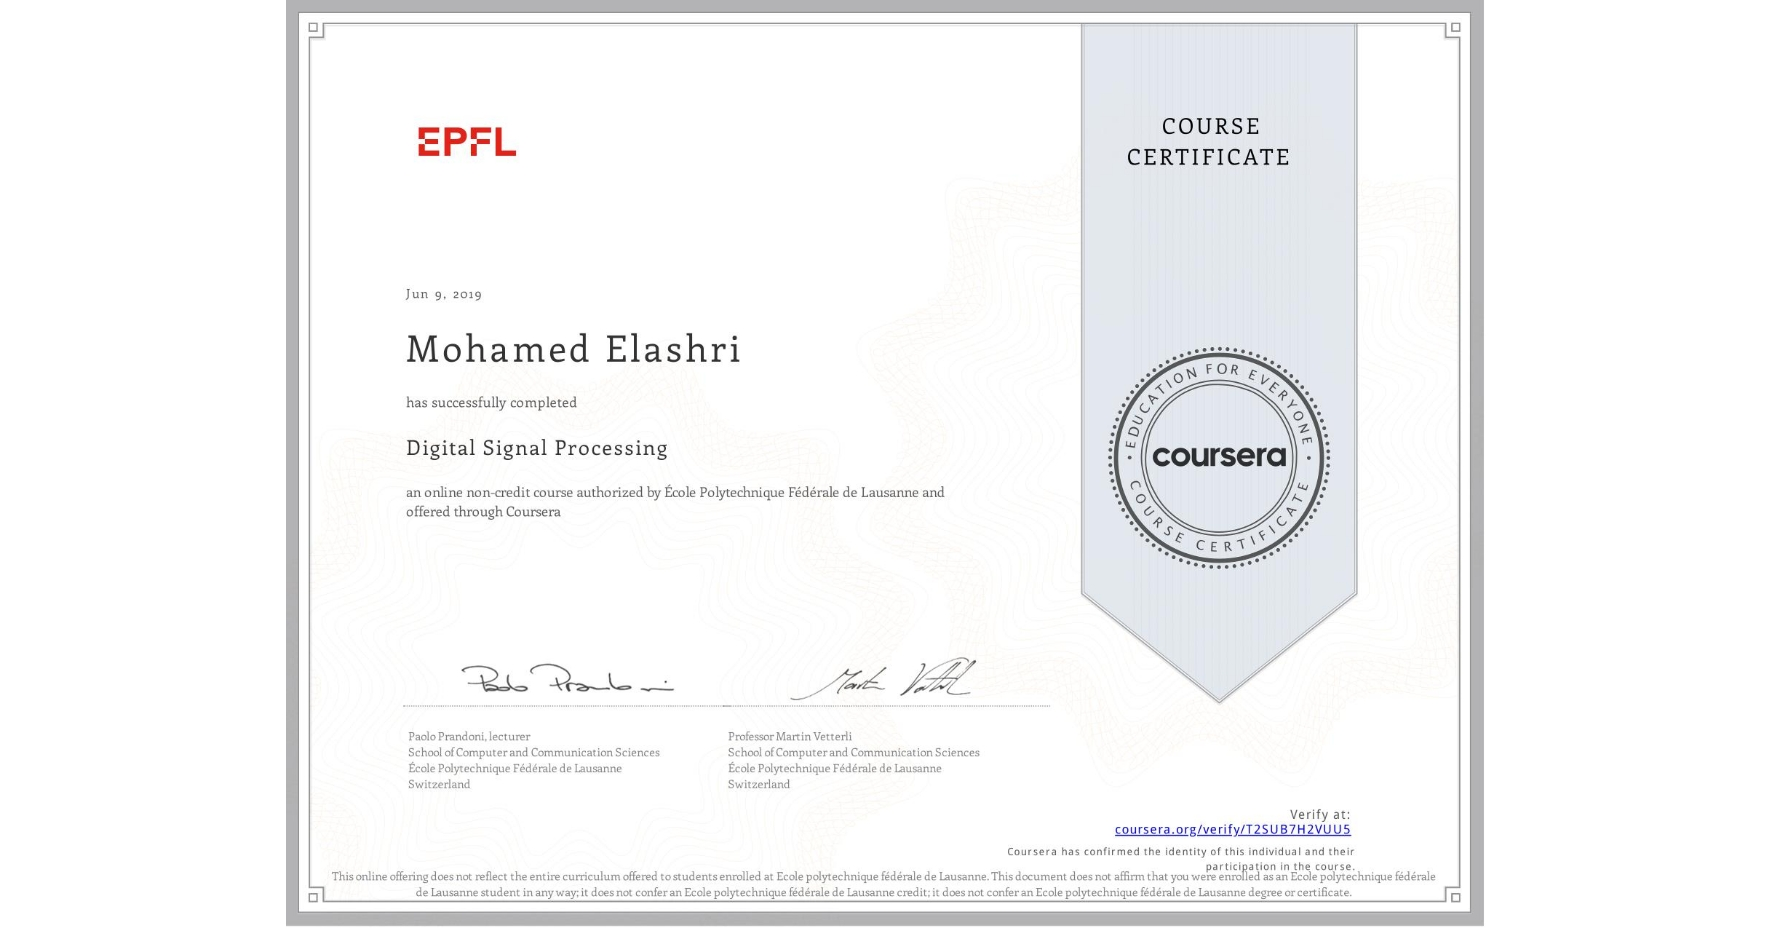 View certificate for Mohamed Elashri, Digital Signal Processing, an online non-credit course authorized by École Polytechnique Fédérale de Lausanne and offered through Coursera